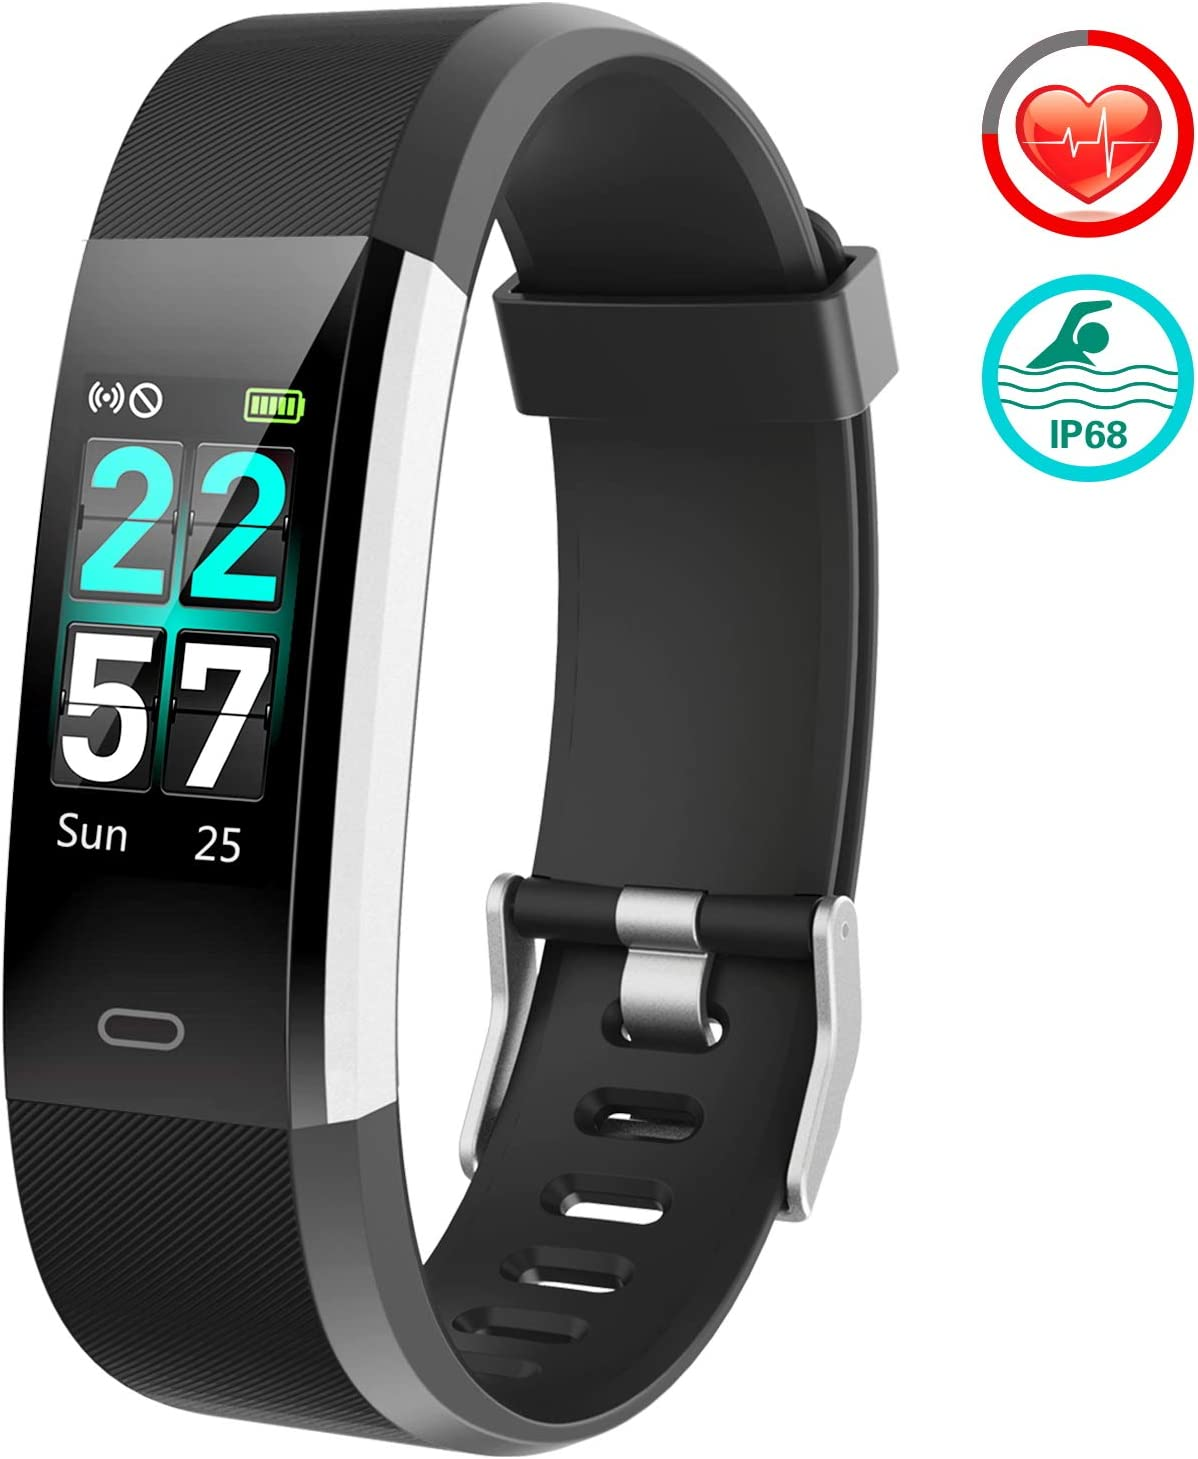 FITFORT Fitness Tracker Color Screen – 2019 Upgraded IP68 Activity Tracker Watch for Women with Heart Rate Monitor, Step Counter, Calorie Counter, Pedometer Watch with 14 Sports Modes for Men Kids